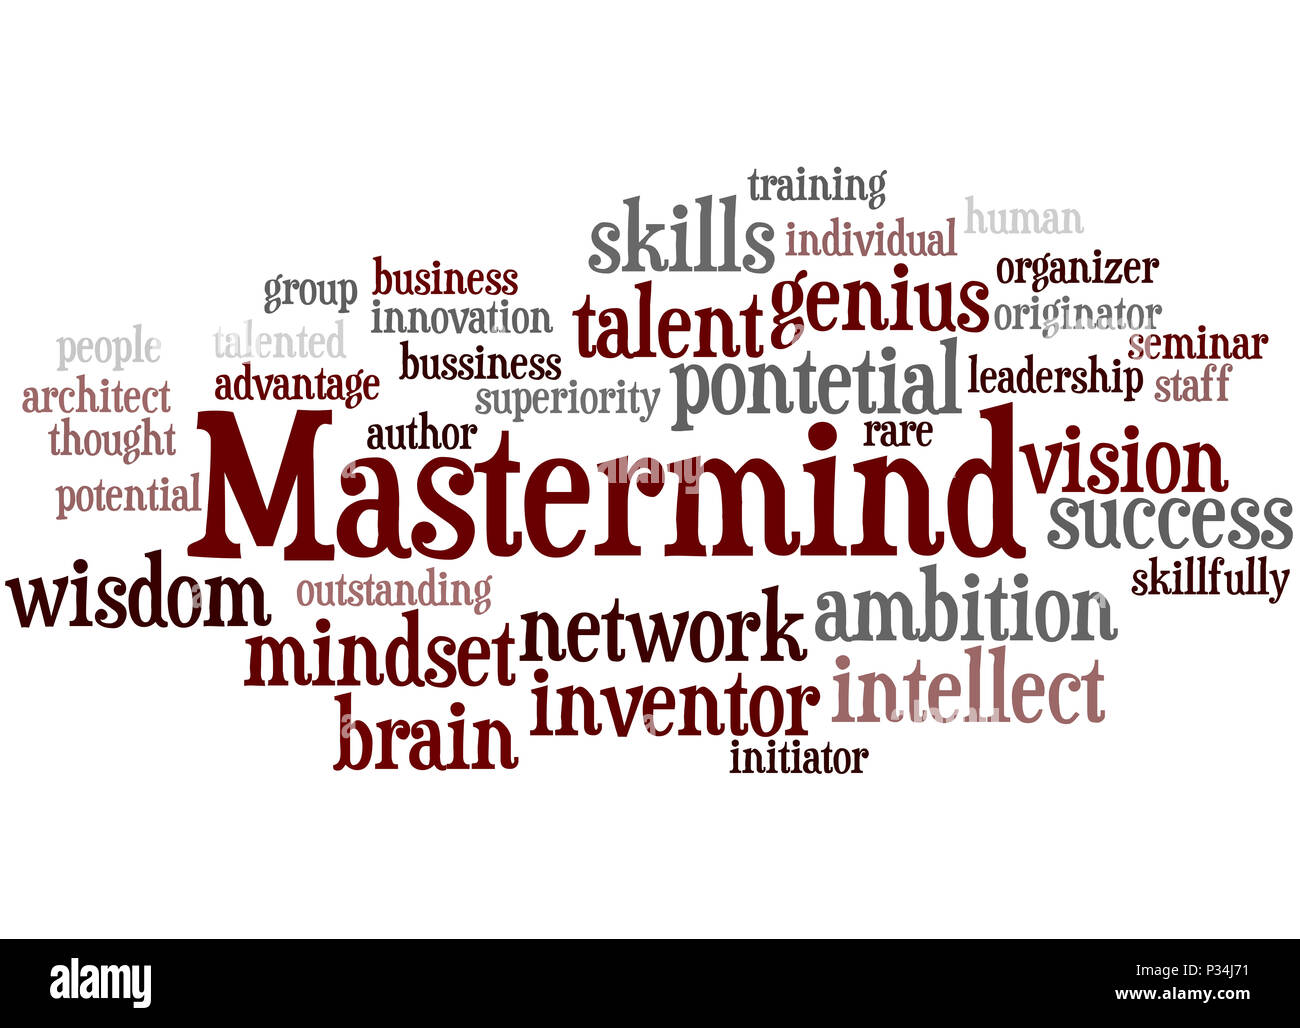 Mastermind, word cloud concept on white background. - Stock Image